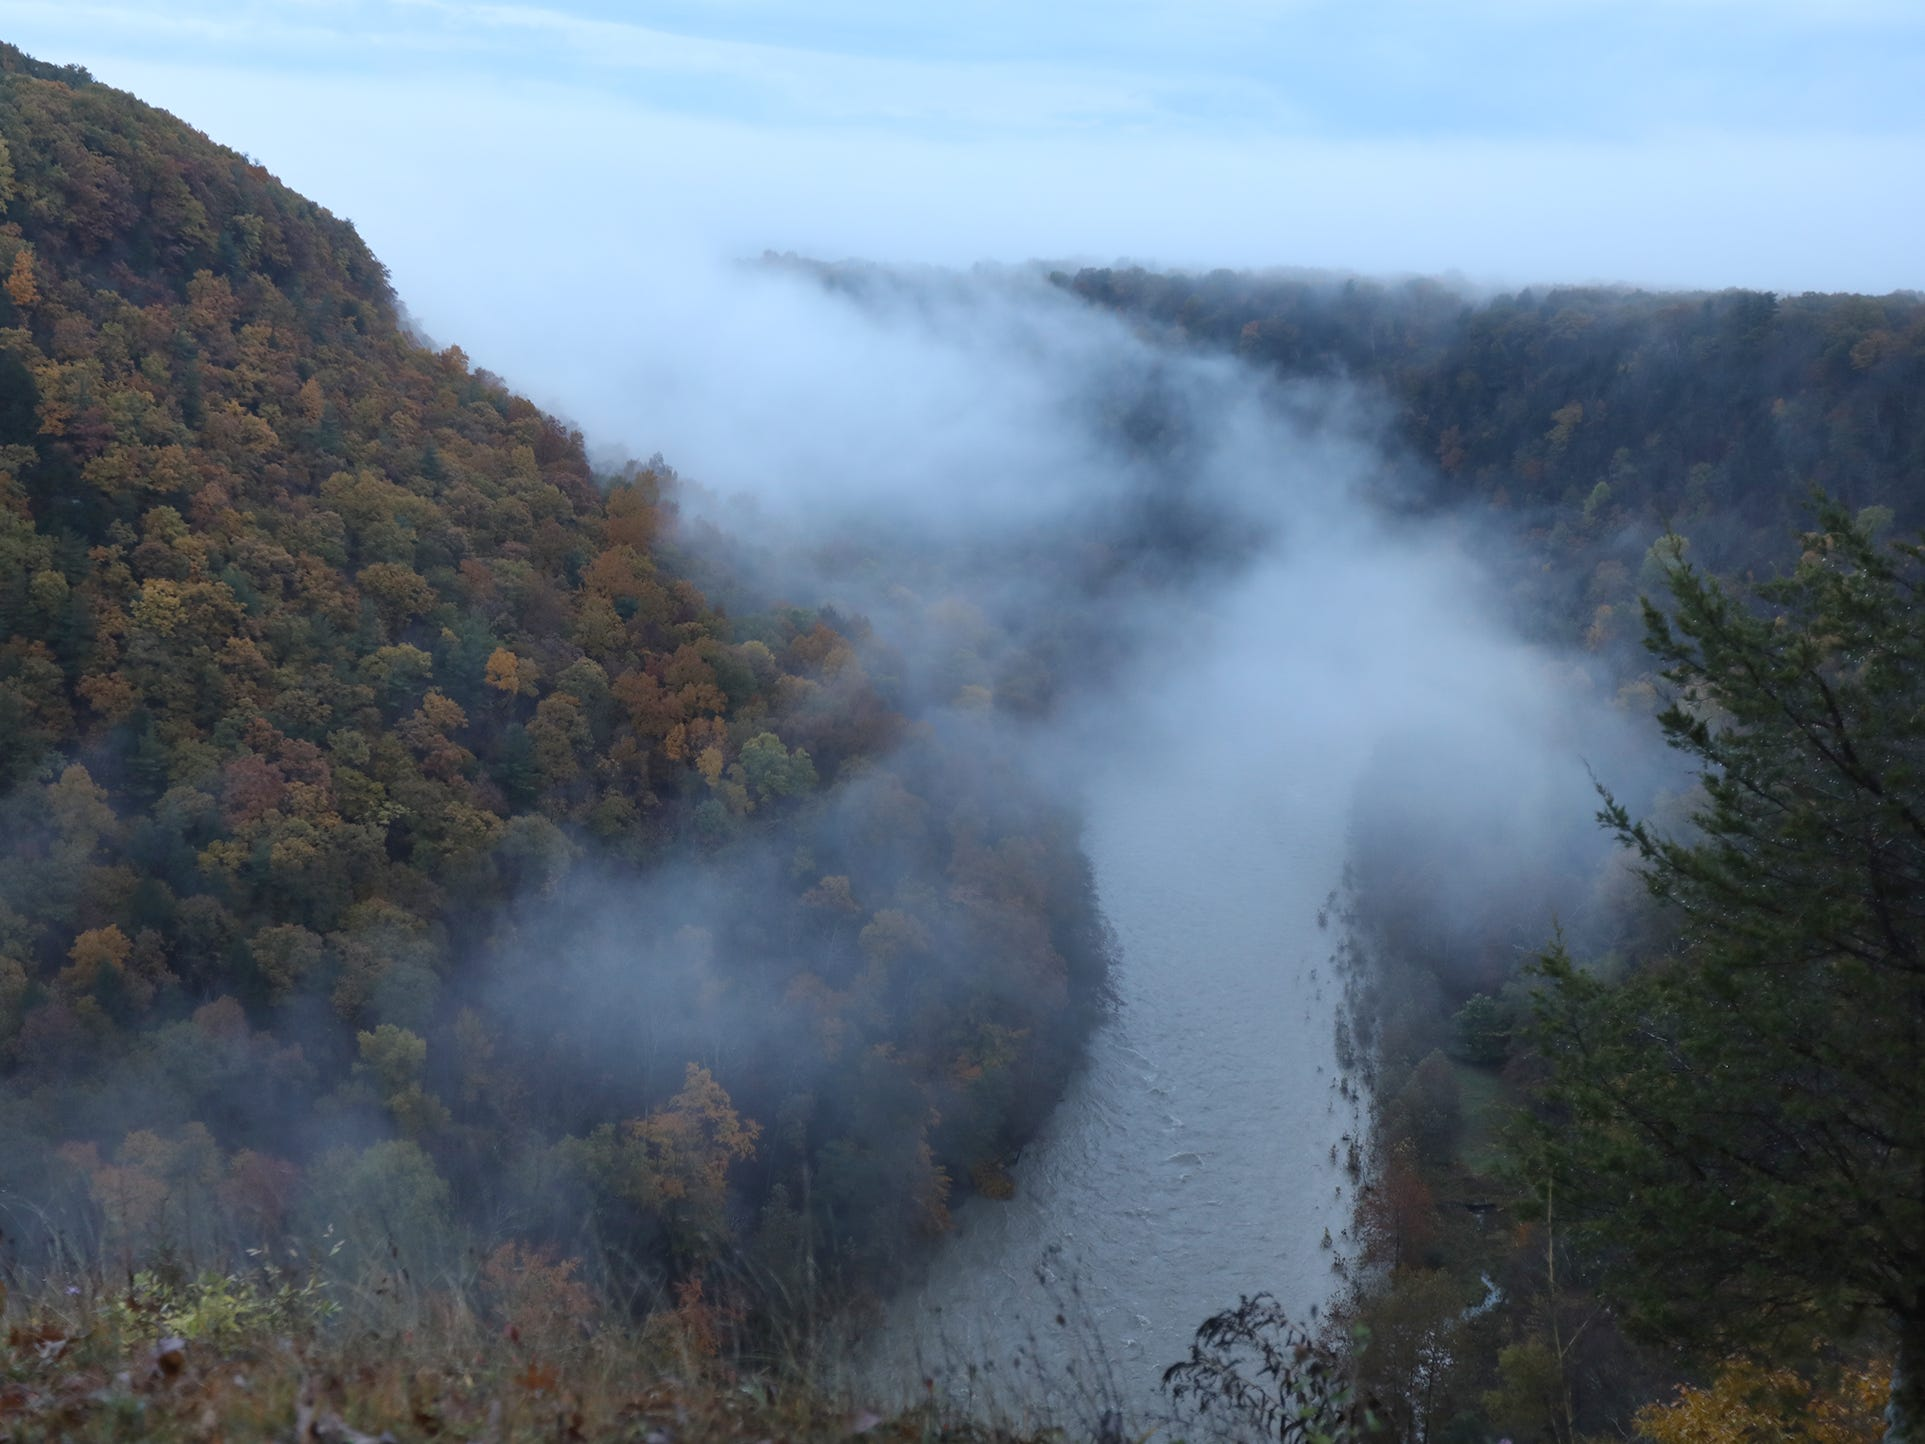 A ring of fog rises off the Genesee River Fog at the Archery Field Overlook in Letchworth State Park.